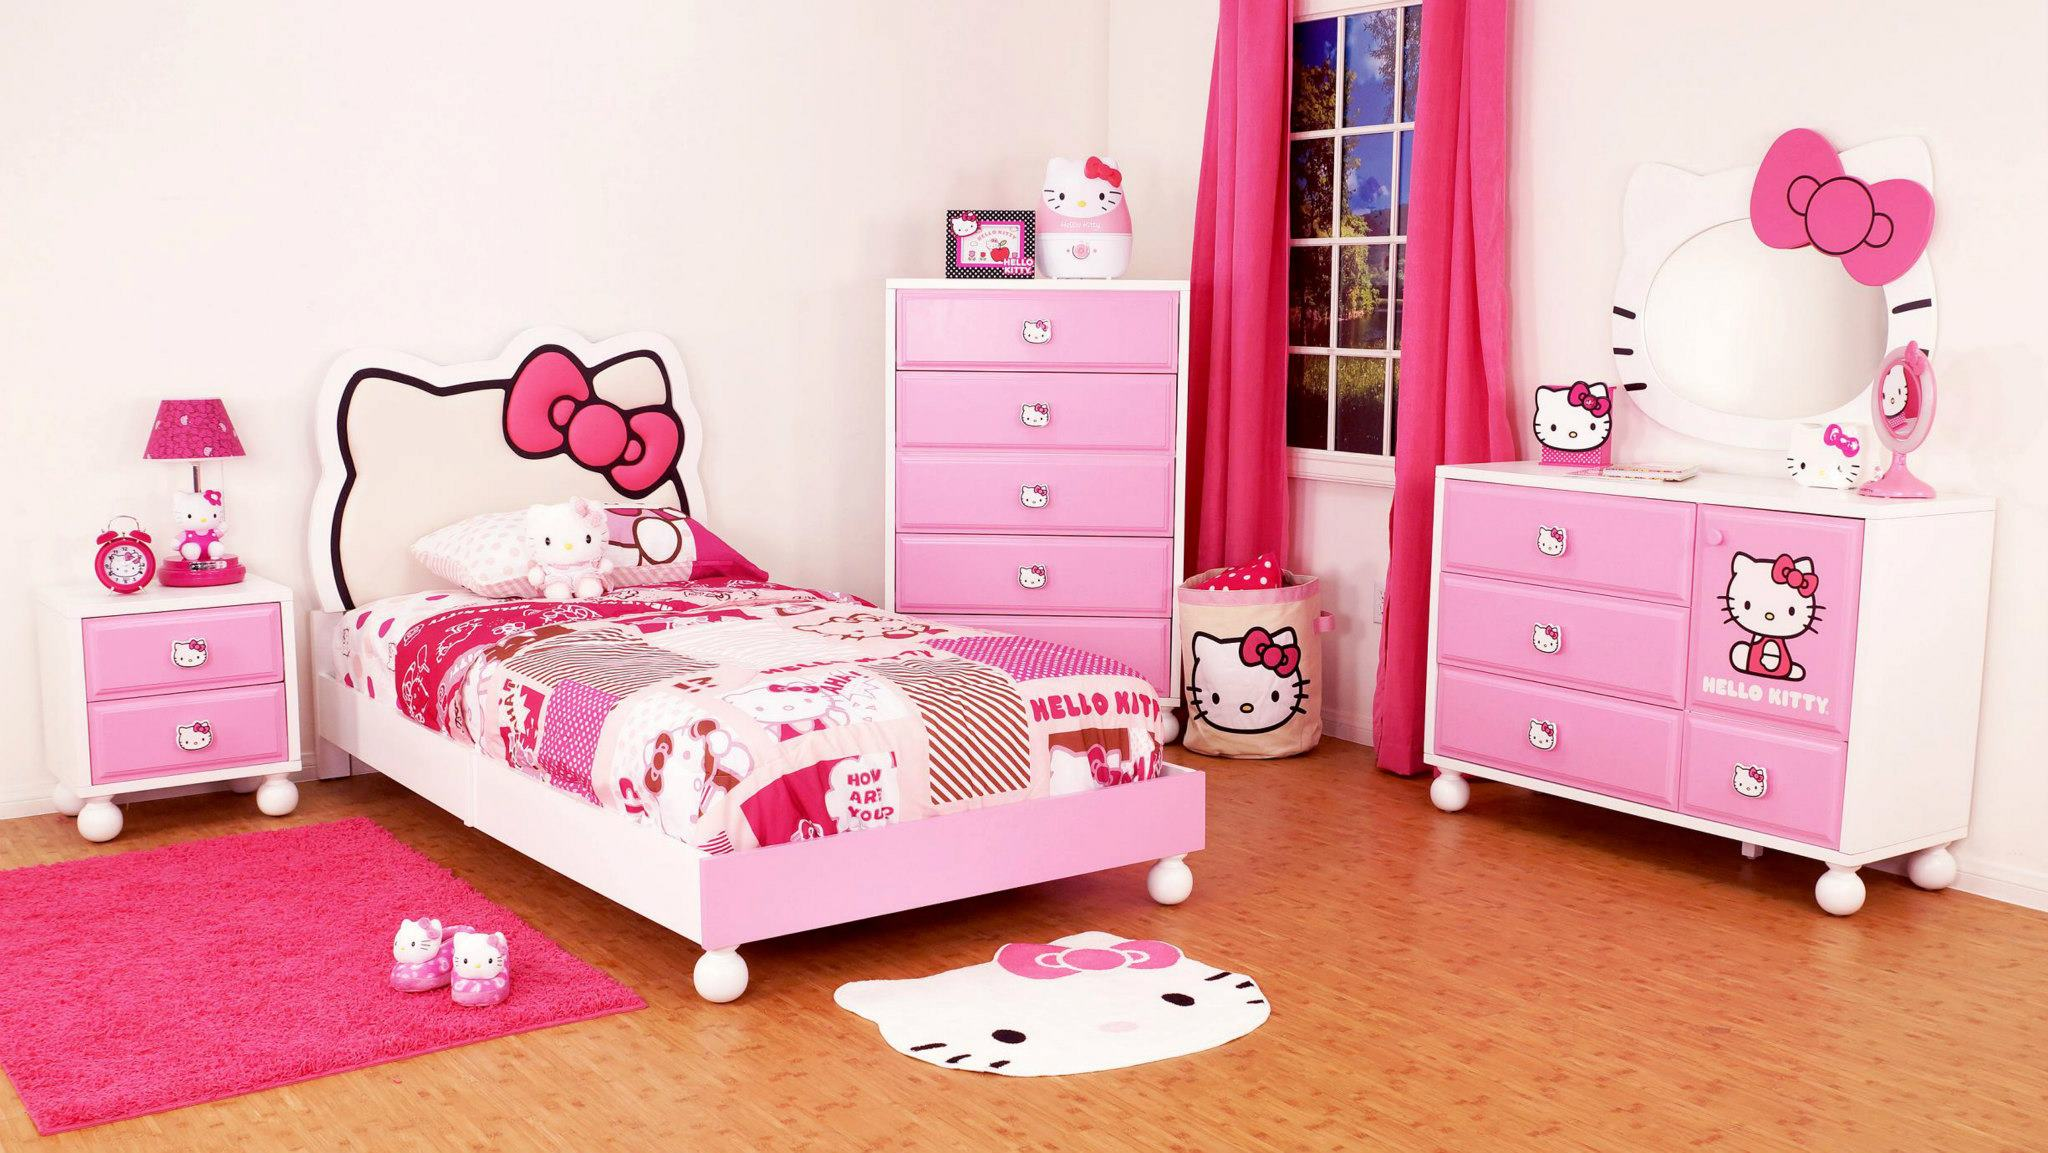 25 Most Adorable Hello Kitty Bedroom Decoration Ideas